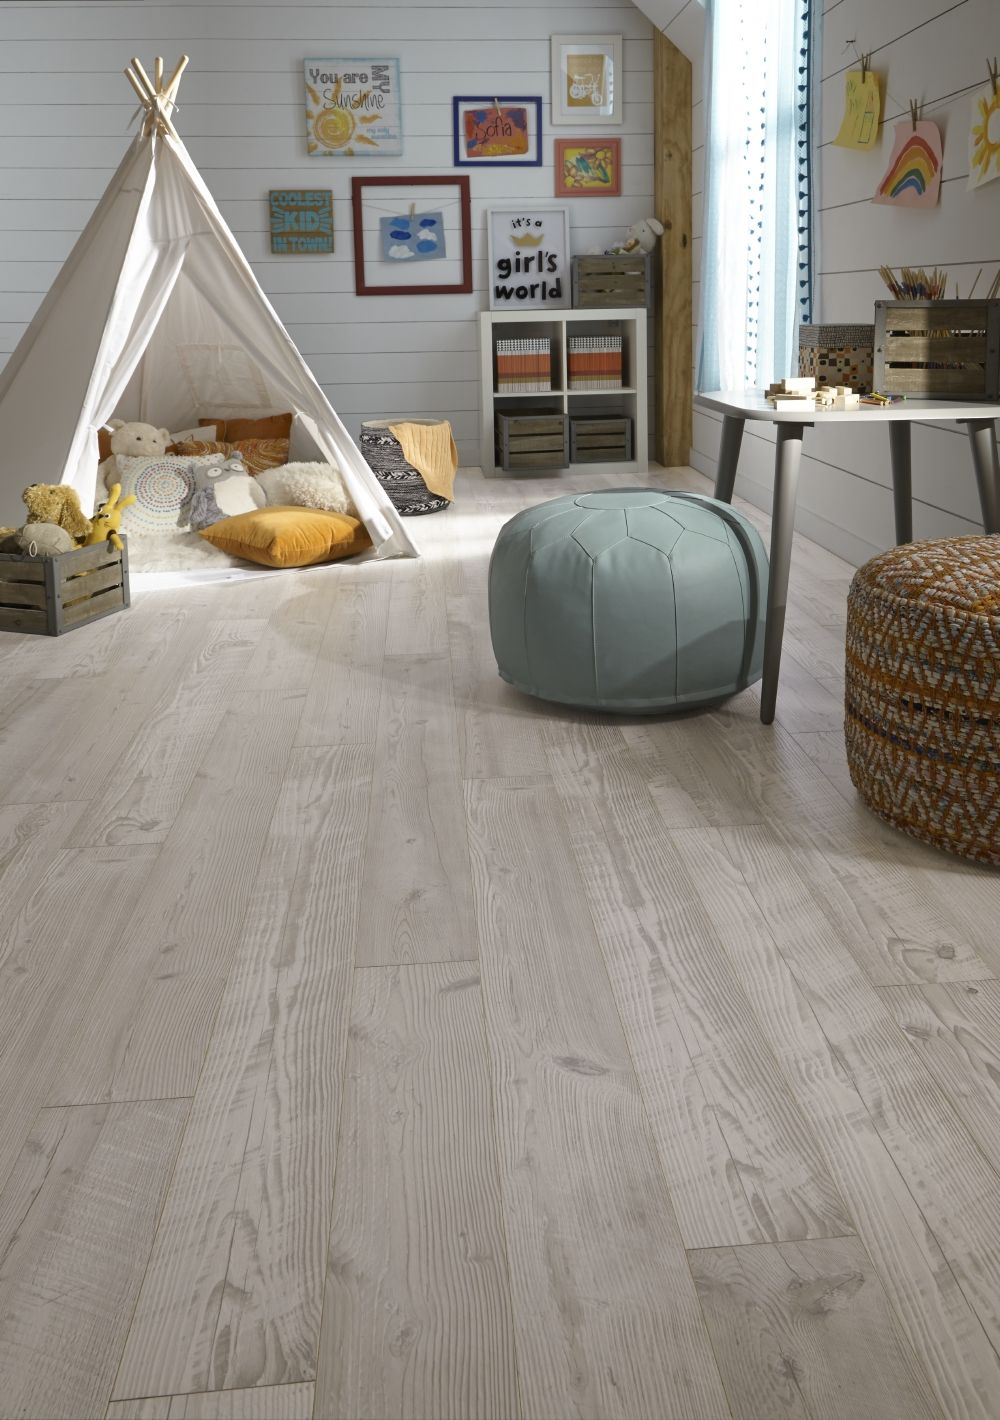 Hot Pick Seaview Pine Laminate A Coastal Inspired Look Of Rustic Weathered By Sand Wind And Sea Bit Ly 2p7vwjc